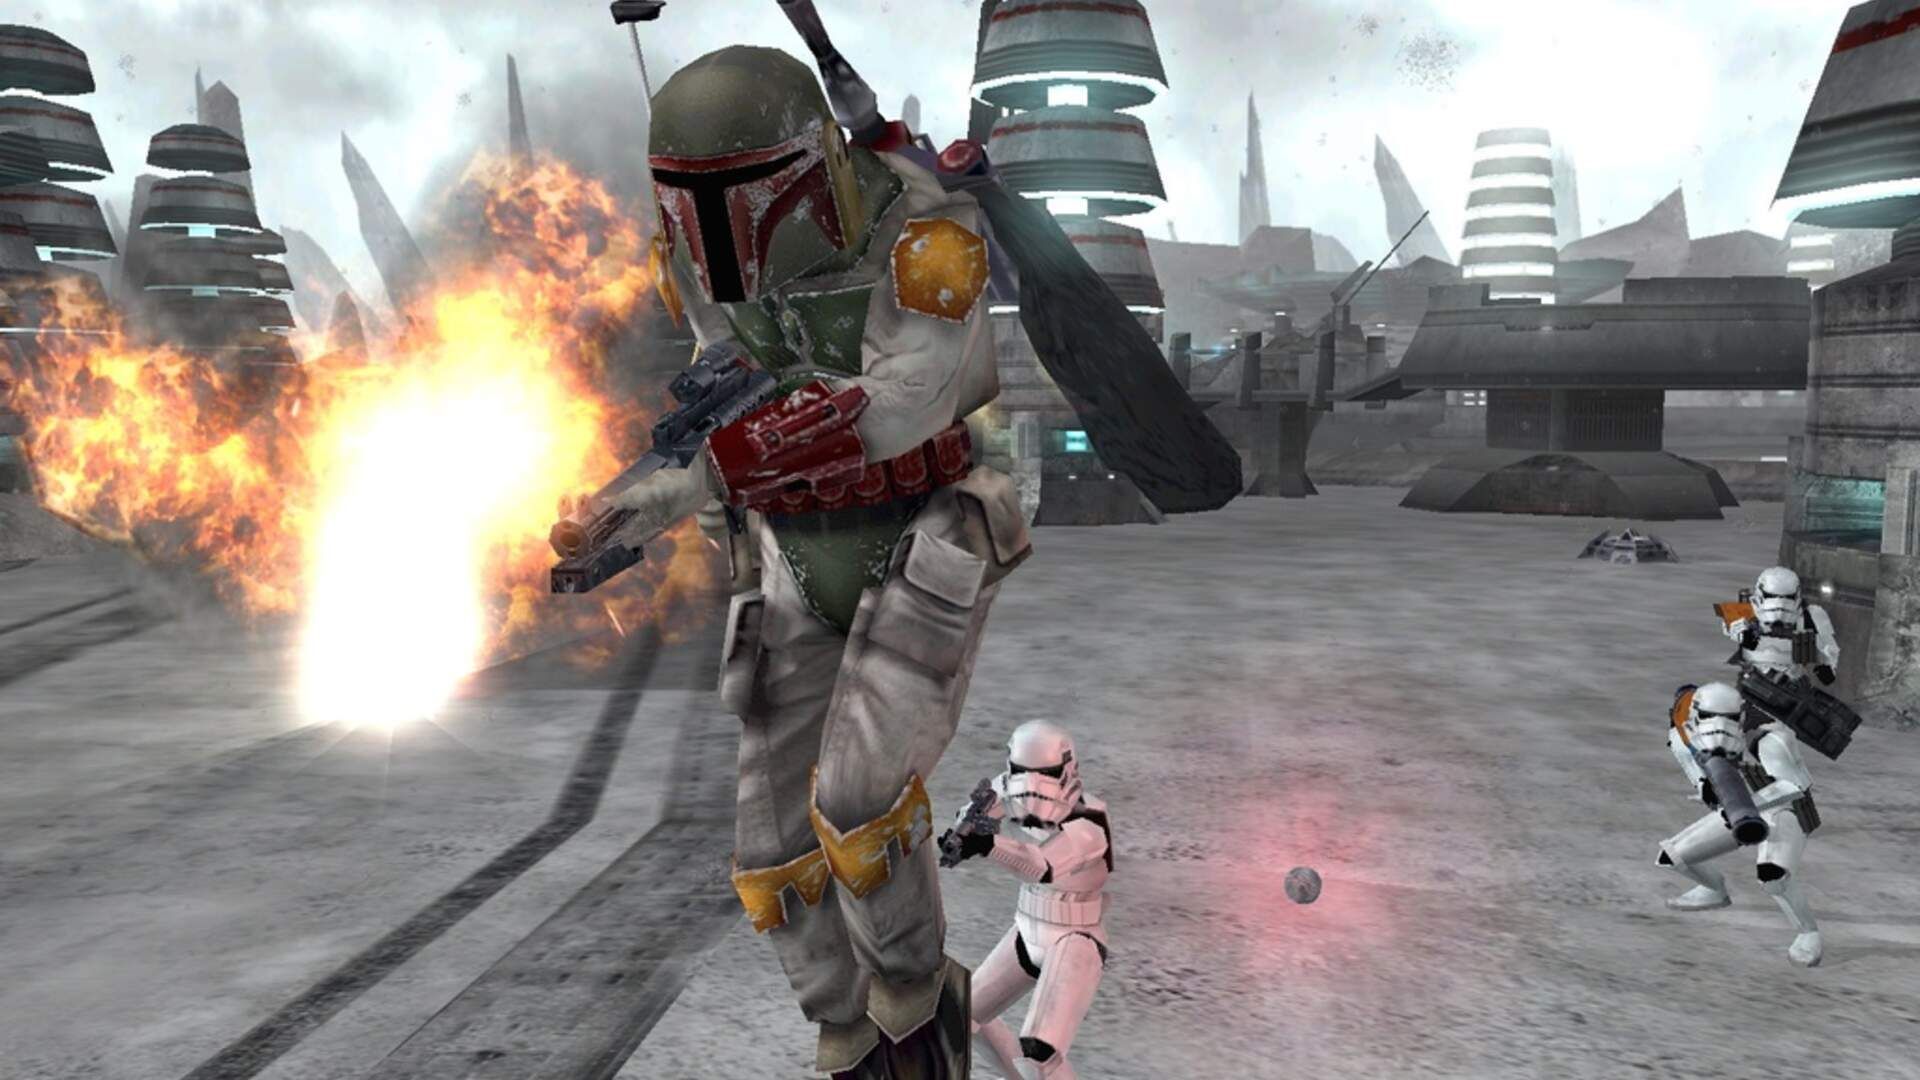 The Original Star Wars Battlefront 2 Headlines April's Xbox Games With Gold